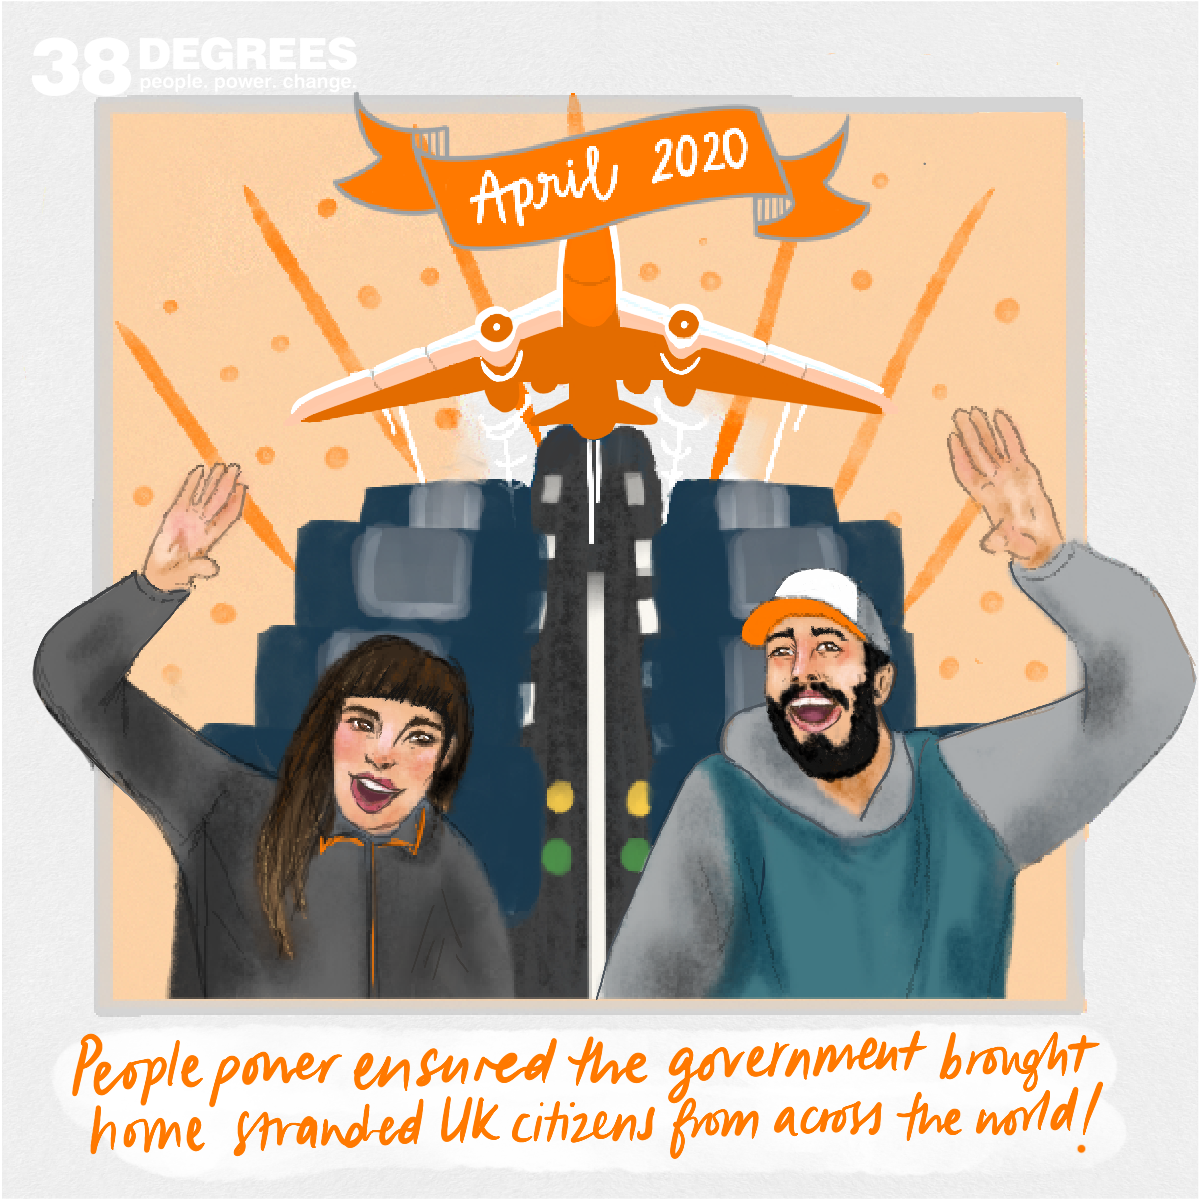 Two passengers on a flight home to the UK illustration